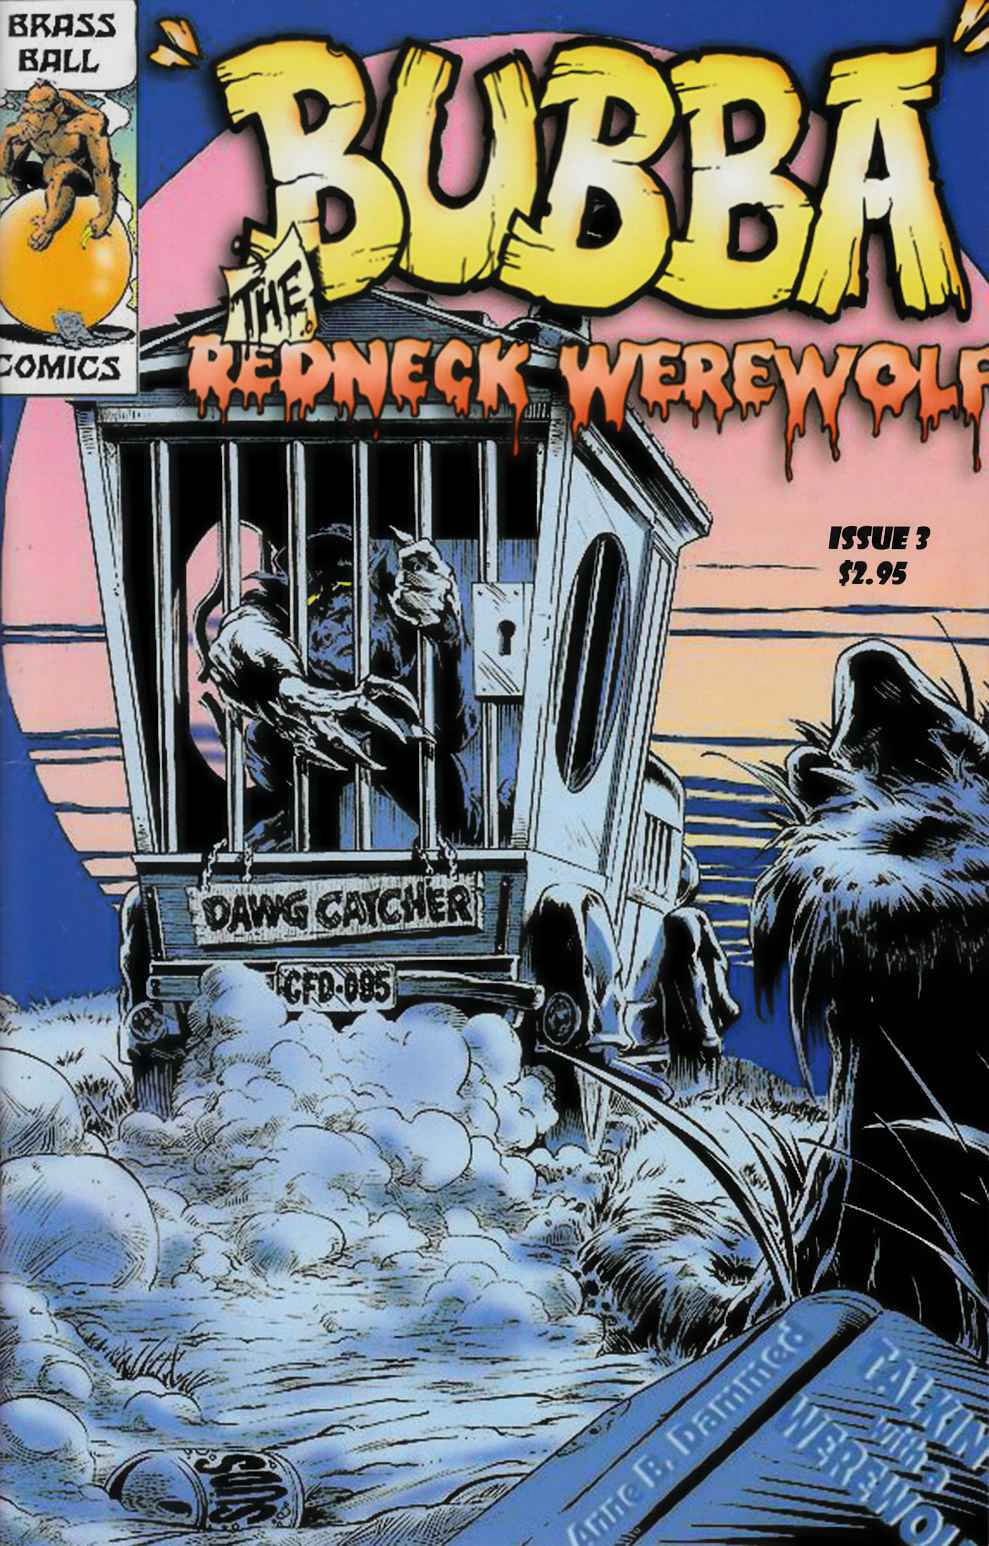 Bubba the Redneck Werewolf #3 [Brass Ball Comic] THUMBNAIL